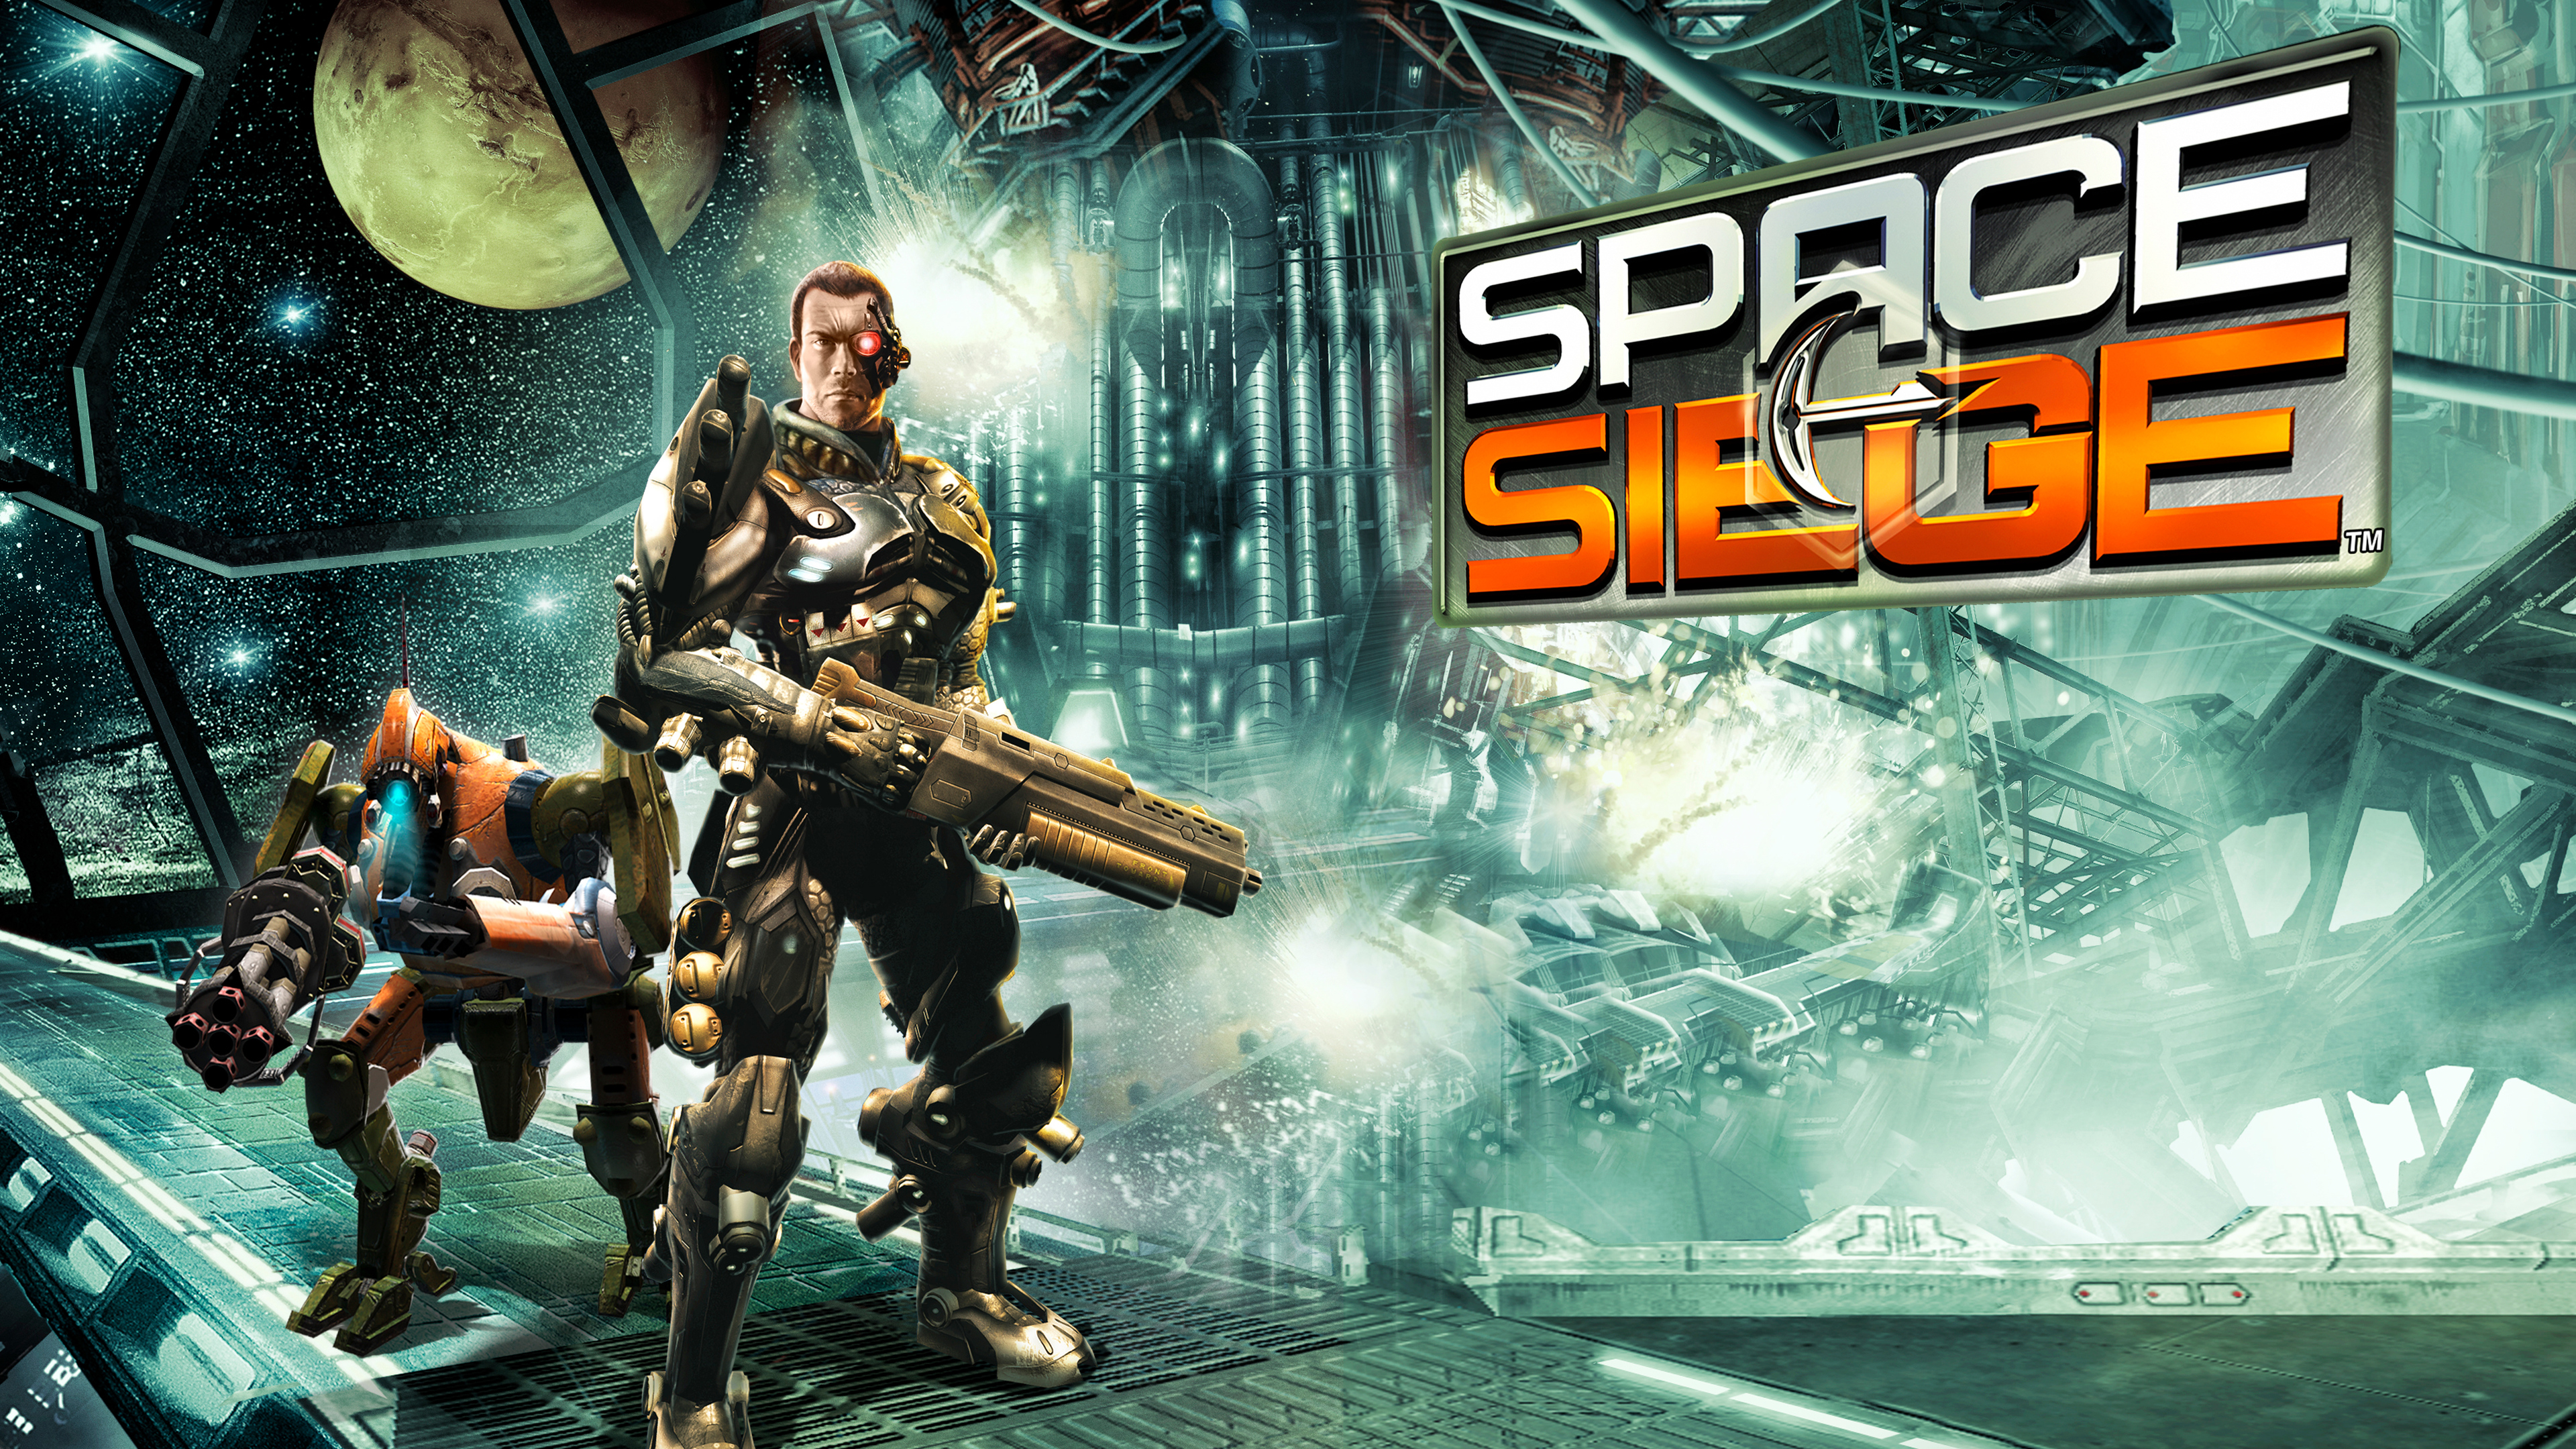 space siege 1568056801 - Space Siege - hd-wallpapers, games wallpapers, 5k wallpapers, 4k-wallpapers